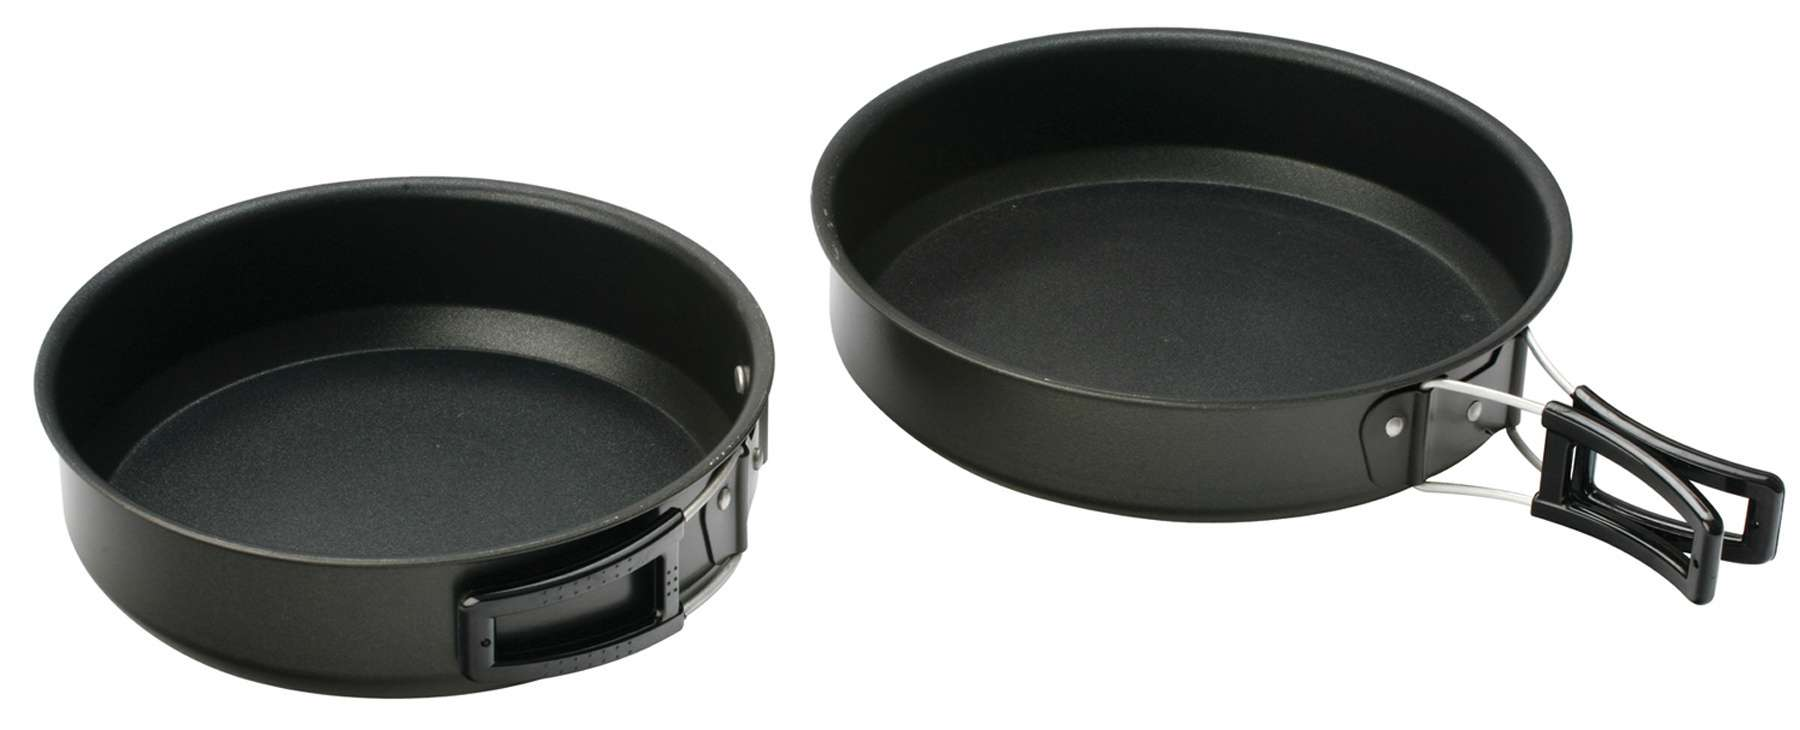 VANGO Non Stick Frying Pan